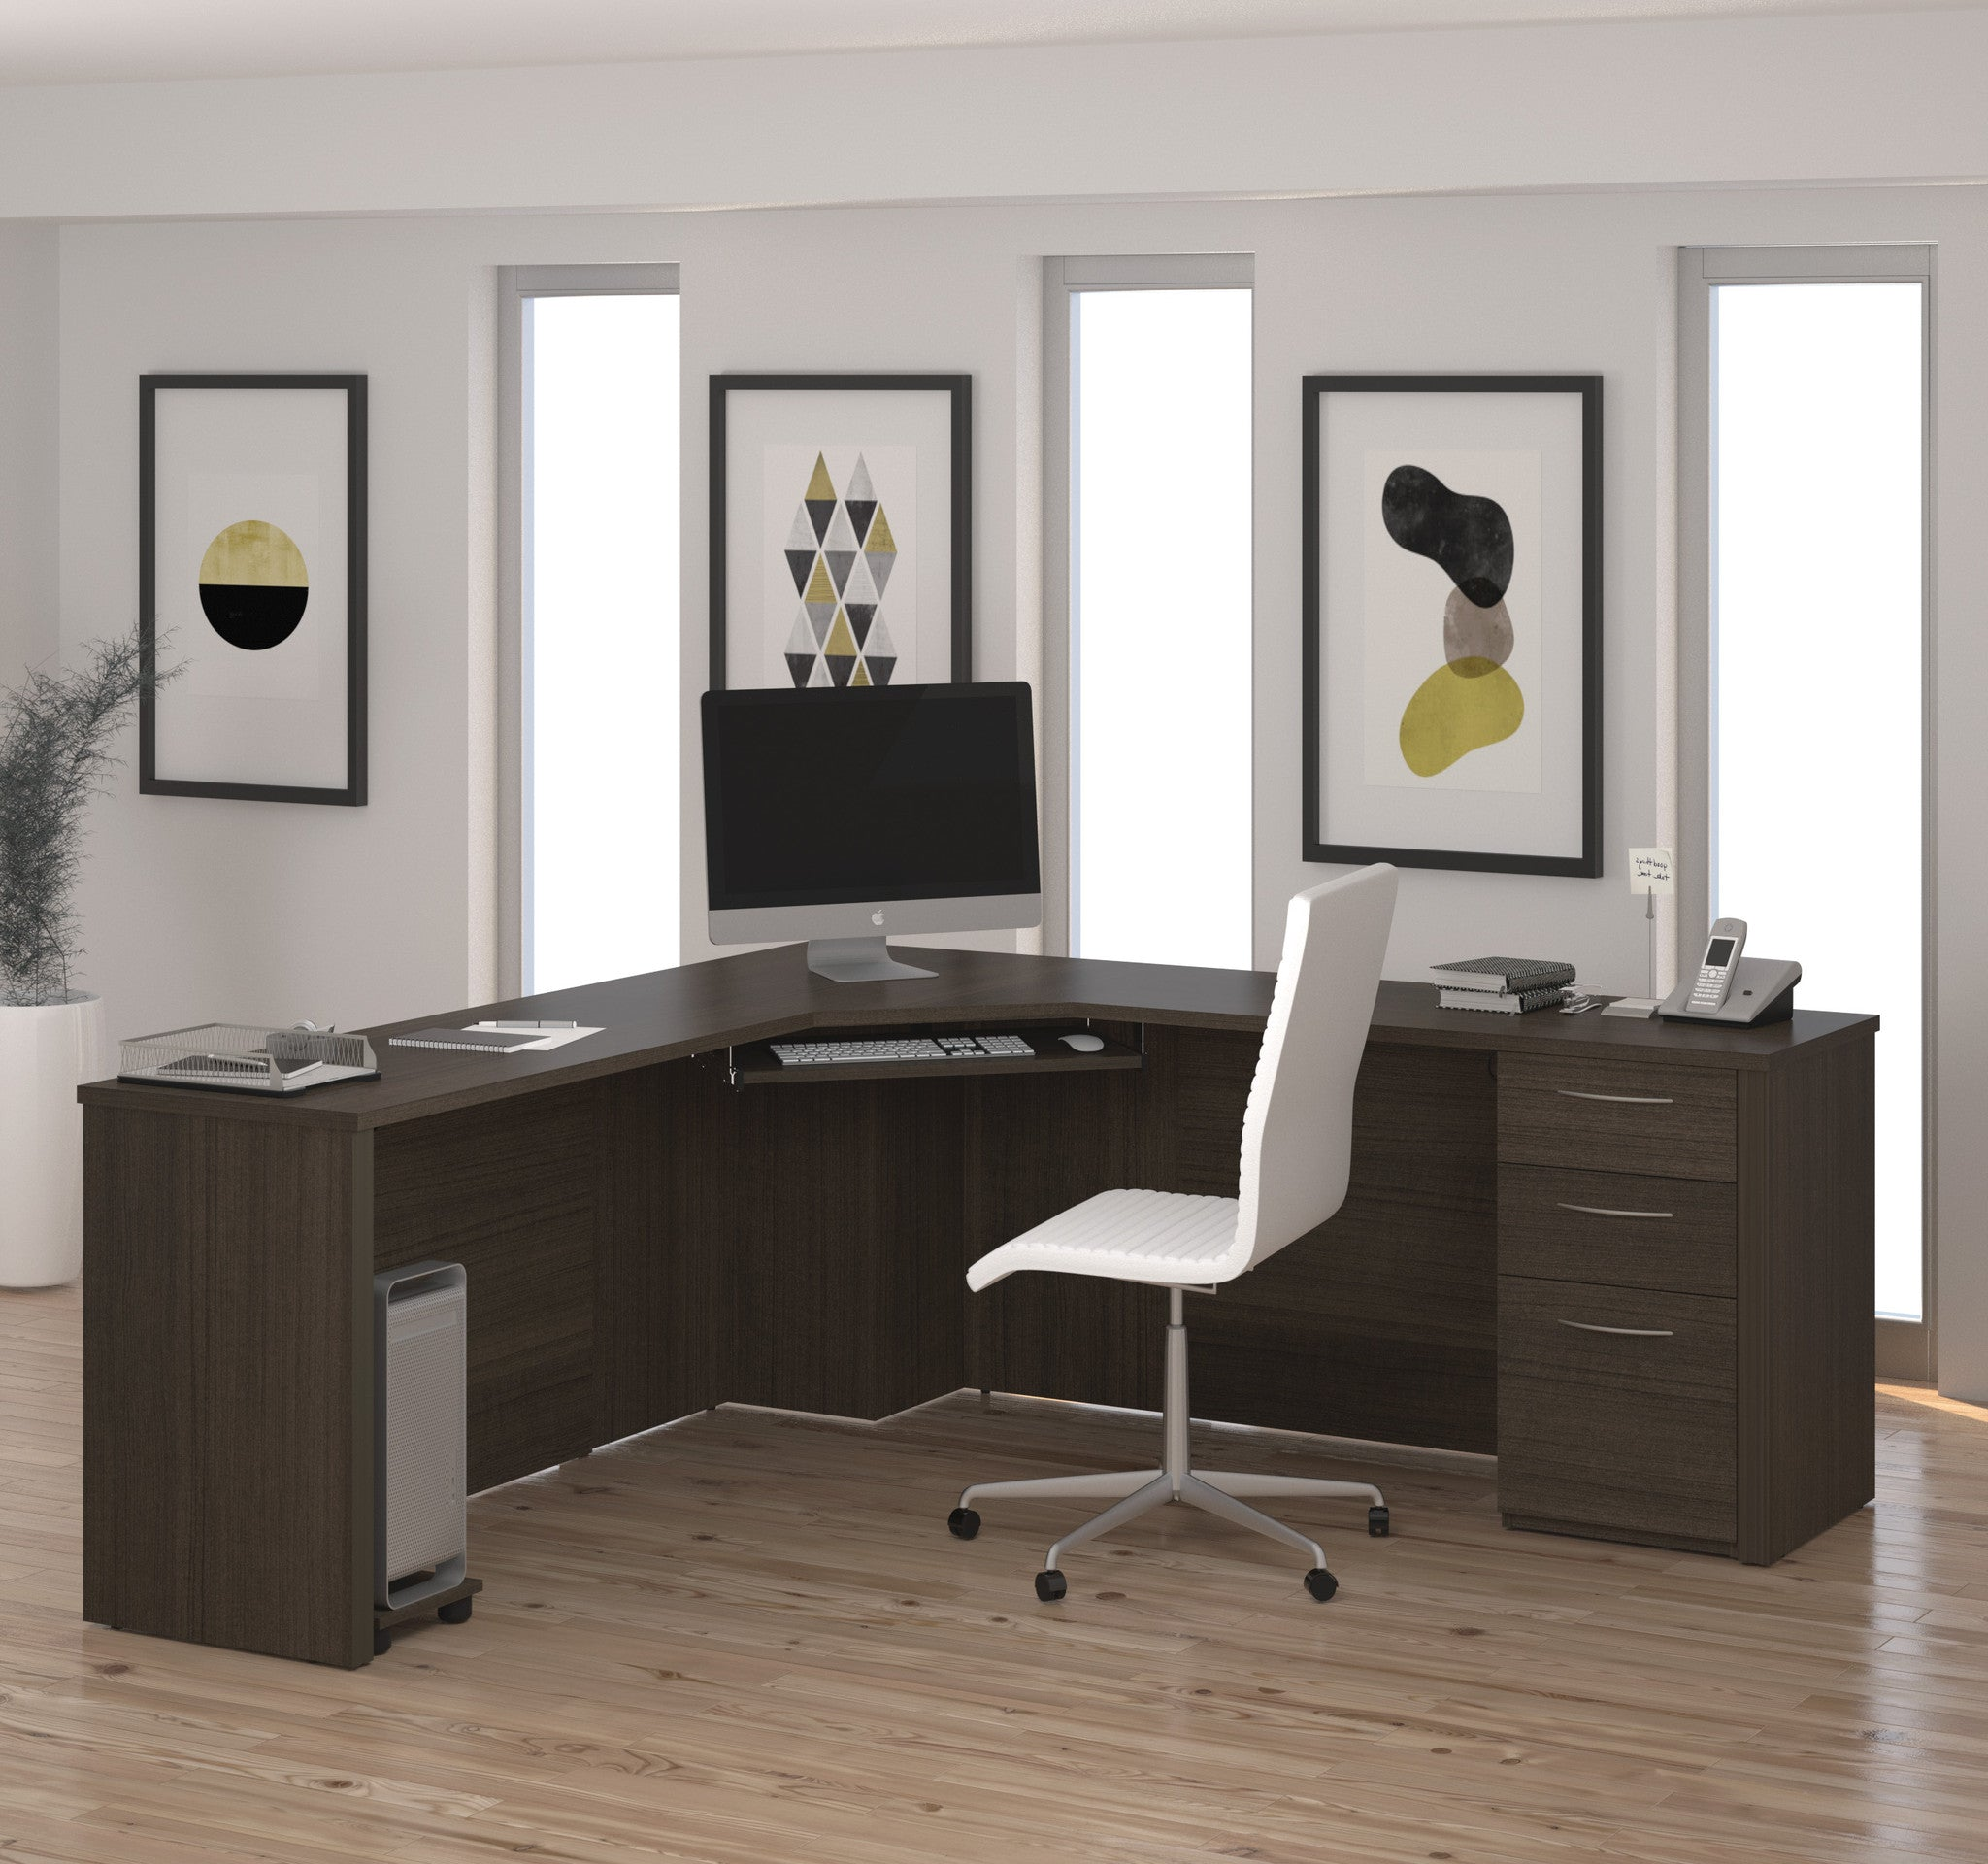 "Contemporary 78"" x 78"" Corner Desk in Dark Chocolate"